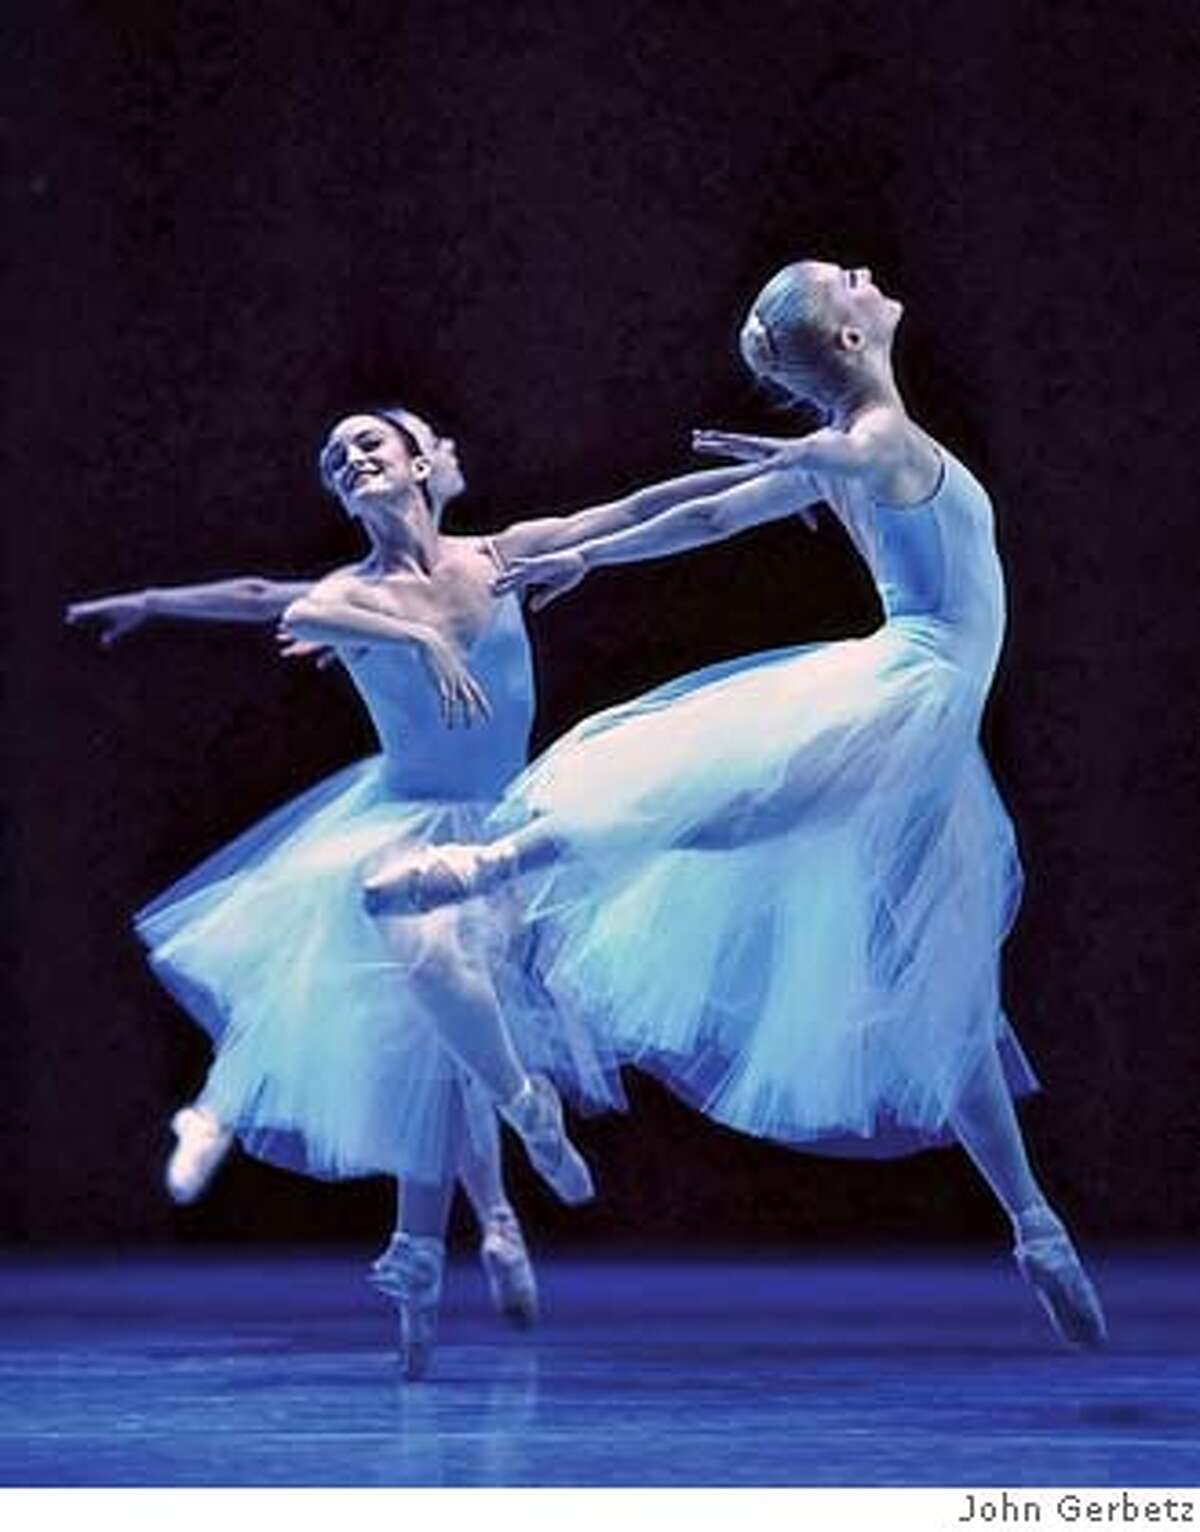 ###Live Caption:George Balanchine's SERENADE, will be one of three performances at Ballet San Jose. Photo by John Gerbetz###Caption History:George Balanchine's SERENADE, will be one of three performances at Ballet San Jose. Photo by John Gerbetz###Notes:###Special Instructions: